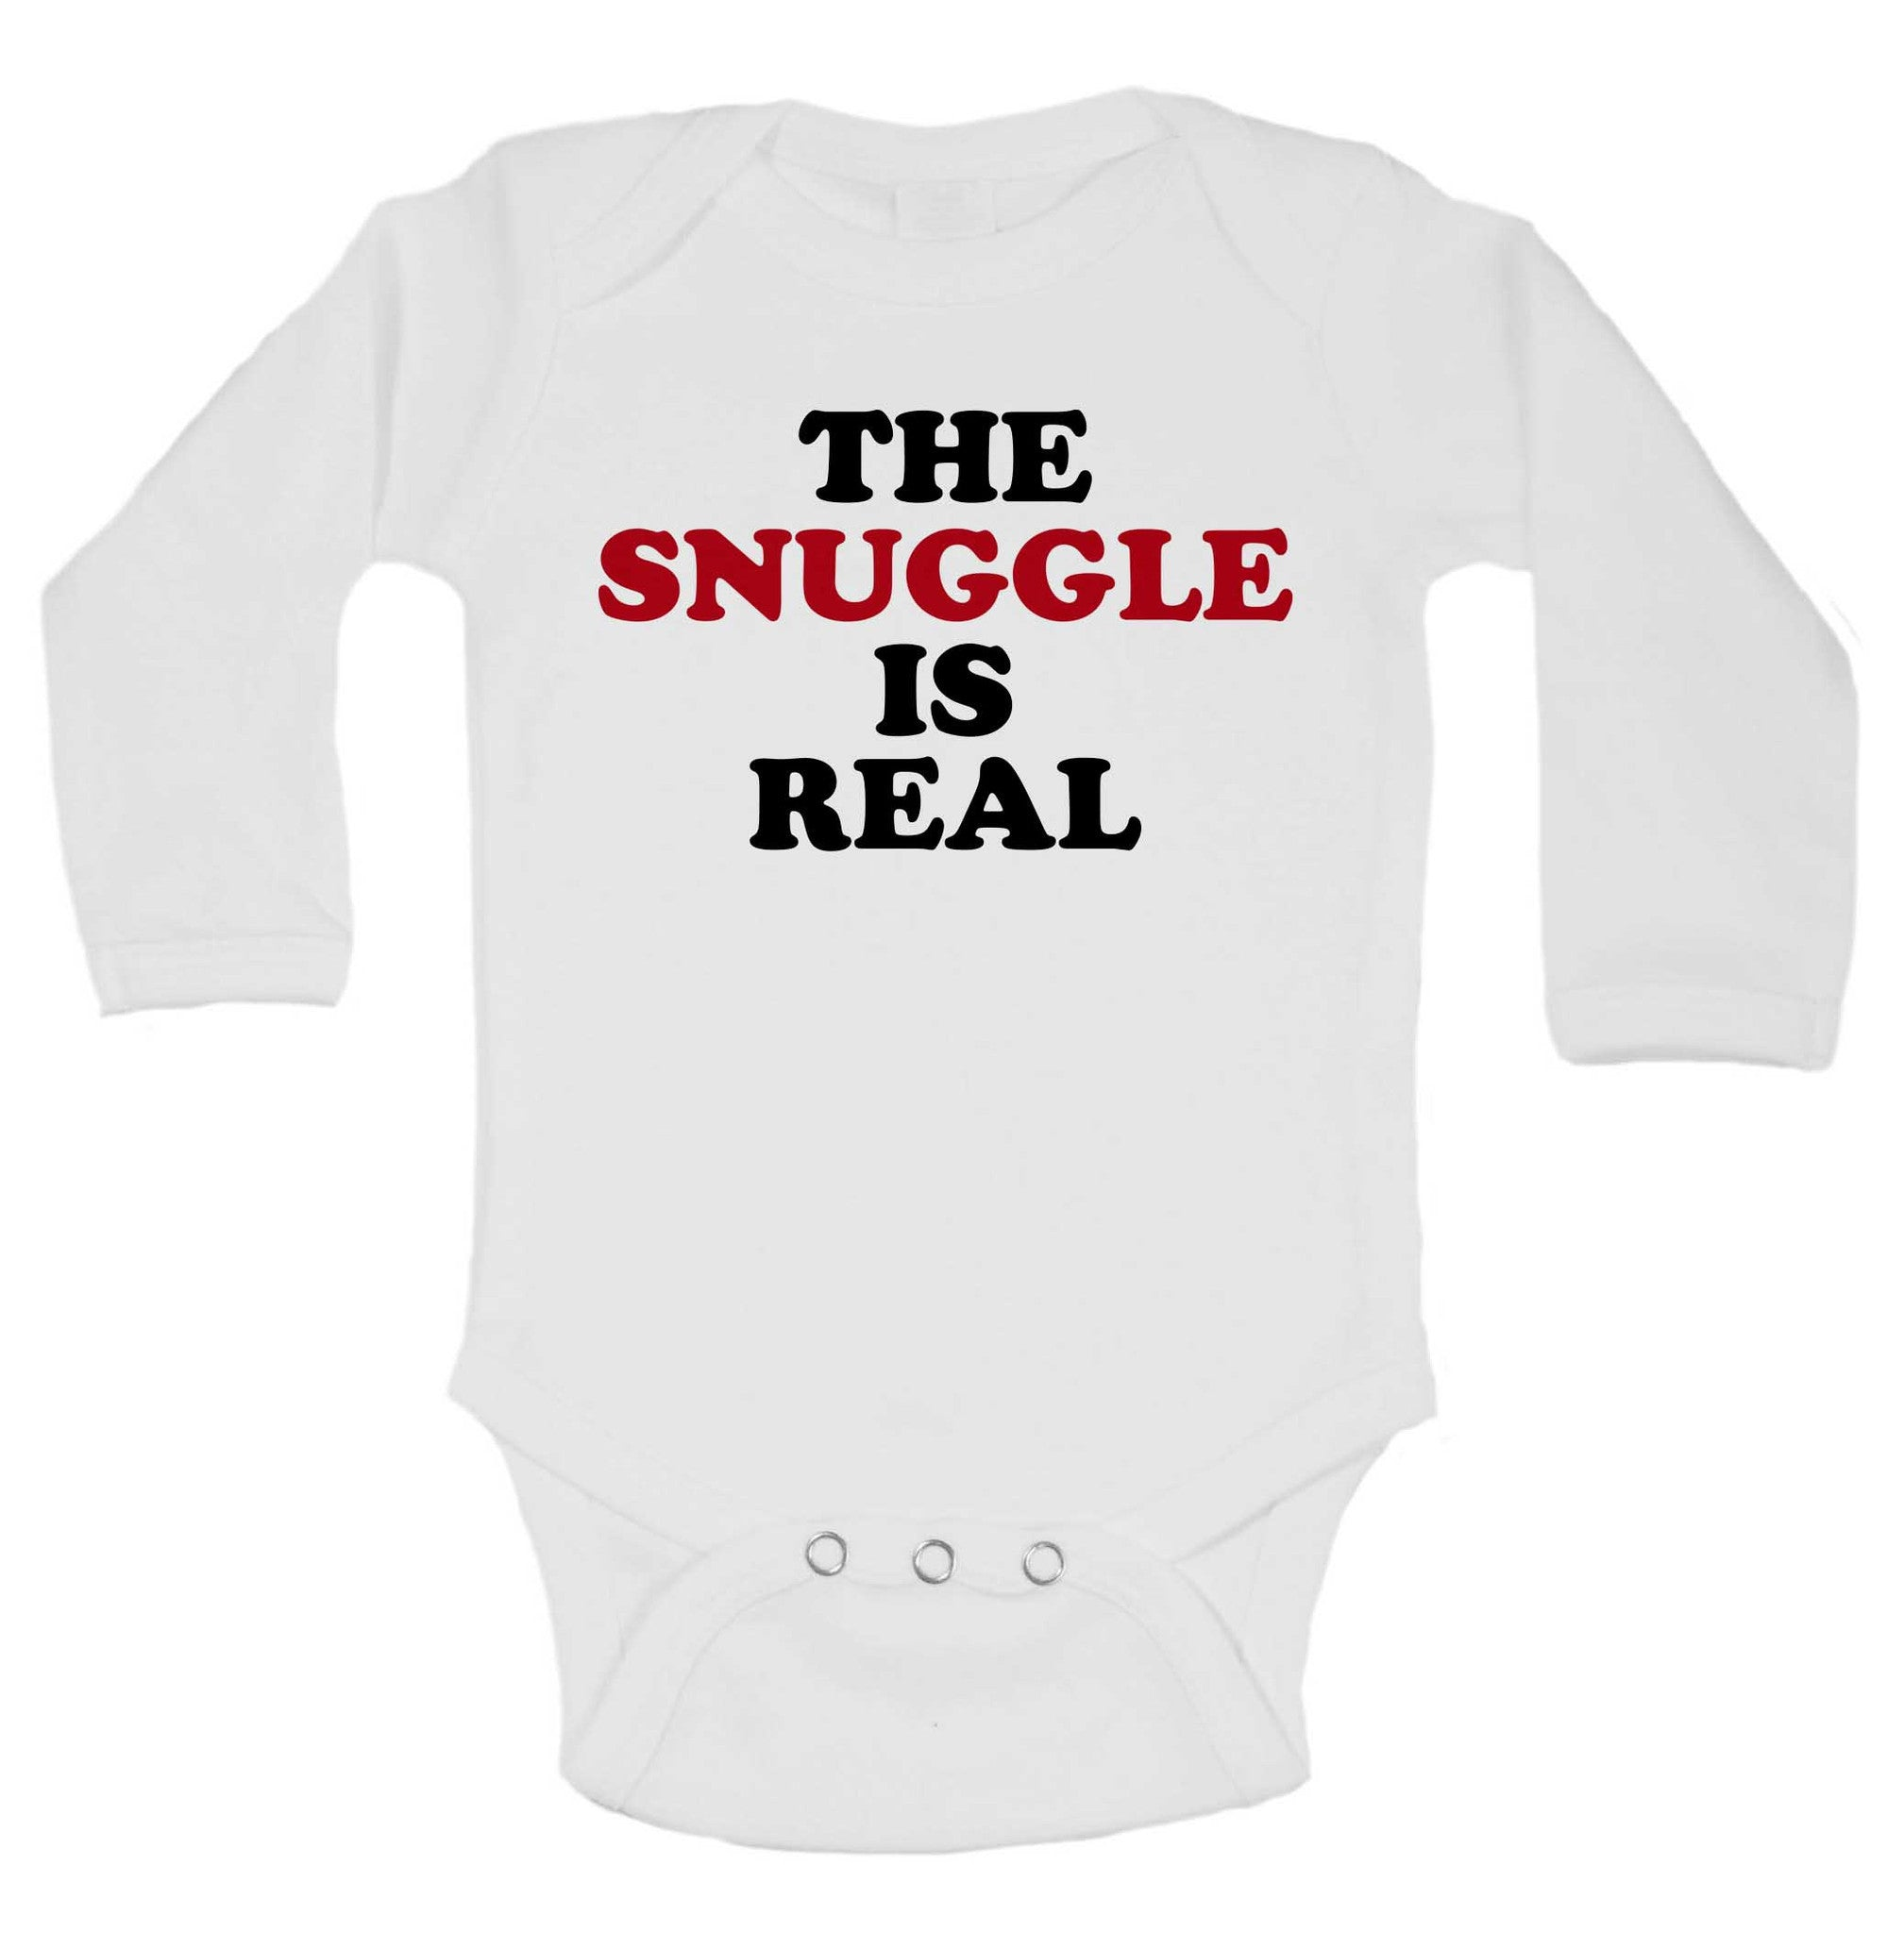 The Snuggle Is Real Funny Kids Onesie - 187 - Funny Shirts Tank Tops Burnouts and Triblends  - 1